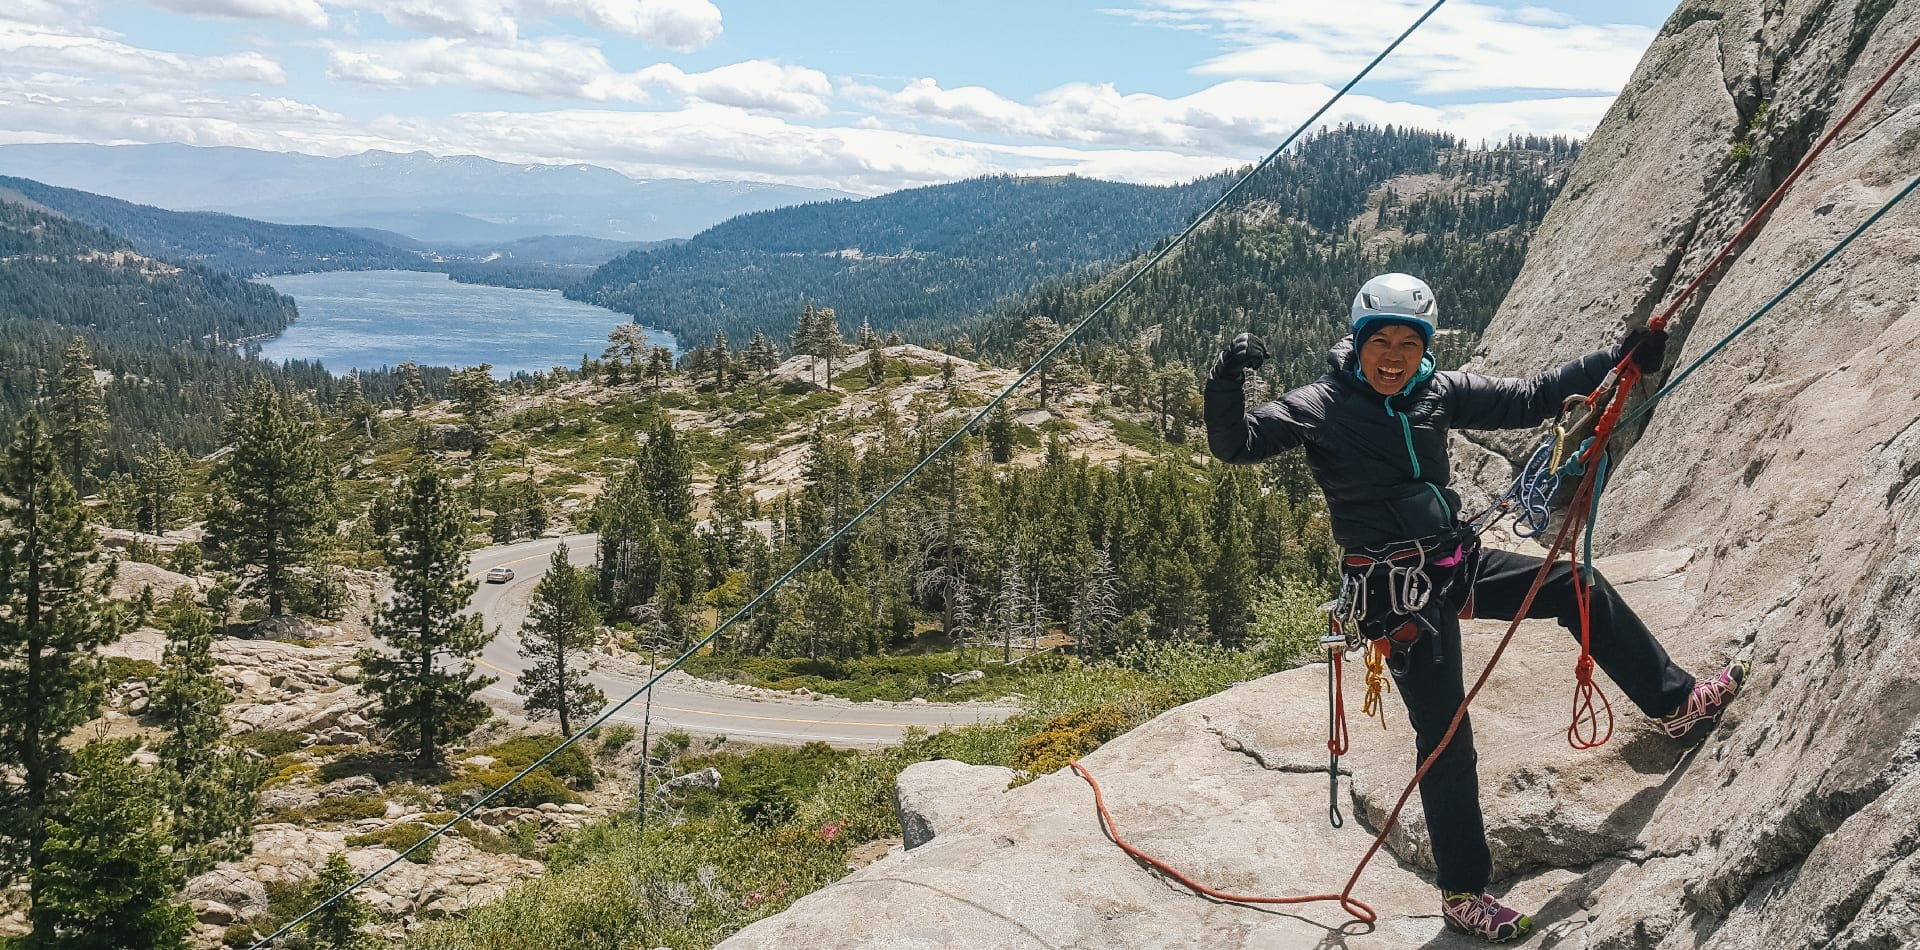 Climbing in California with Chan Yuen Li